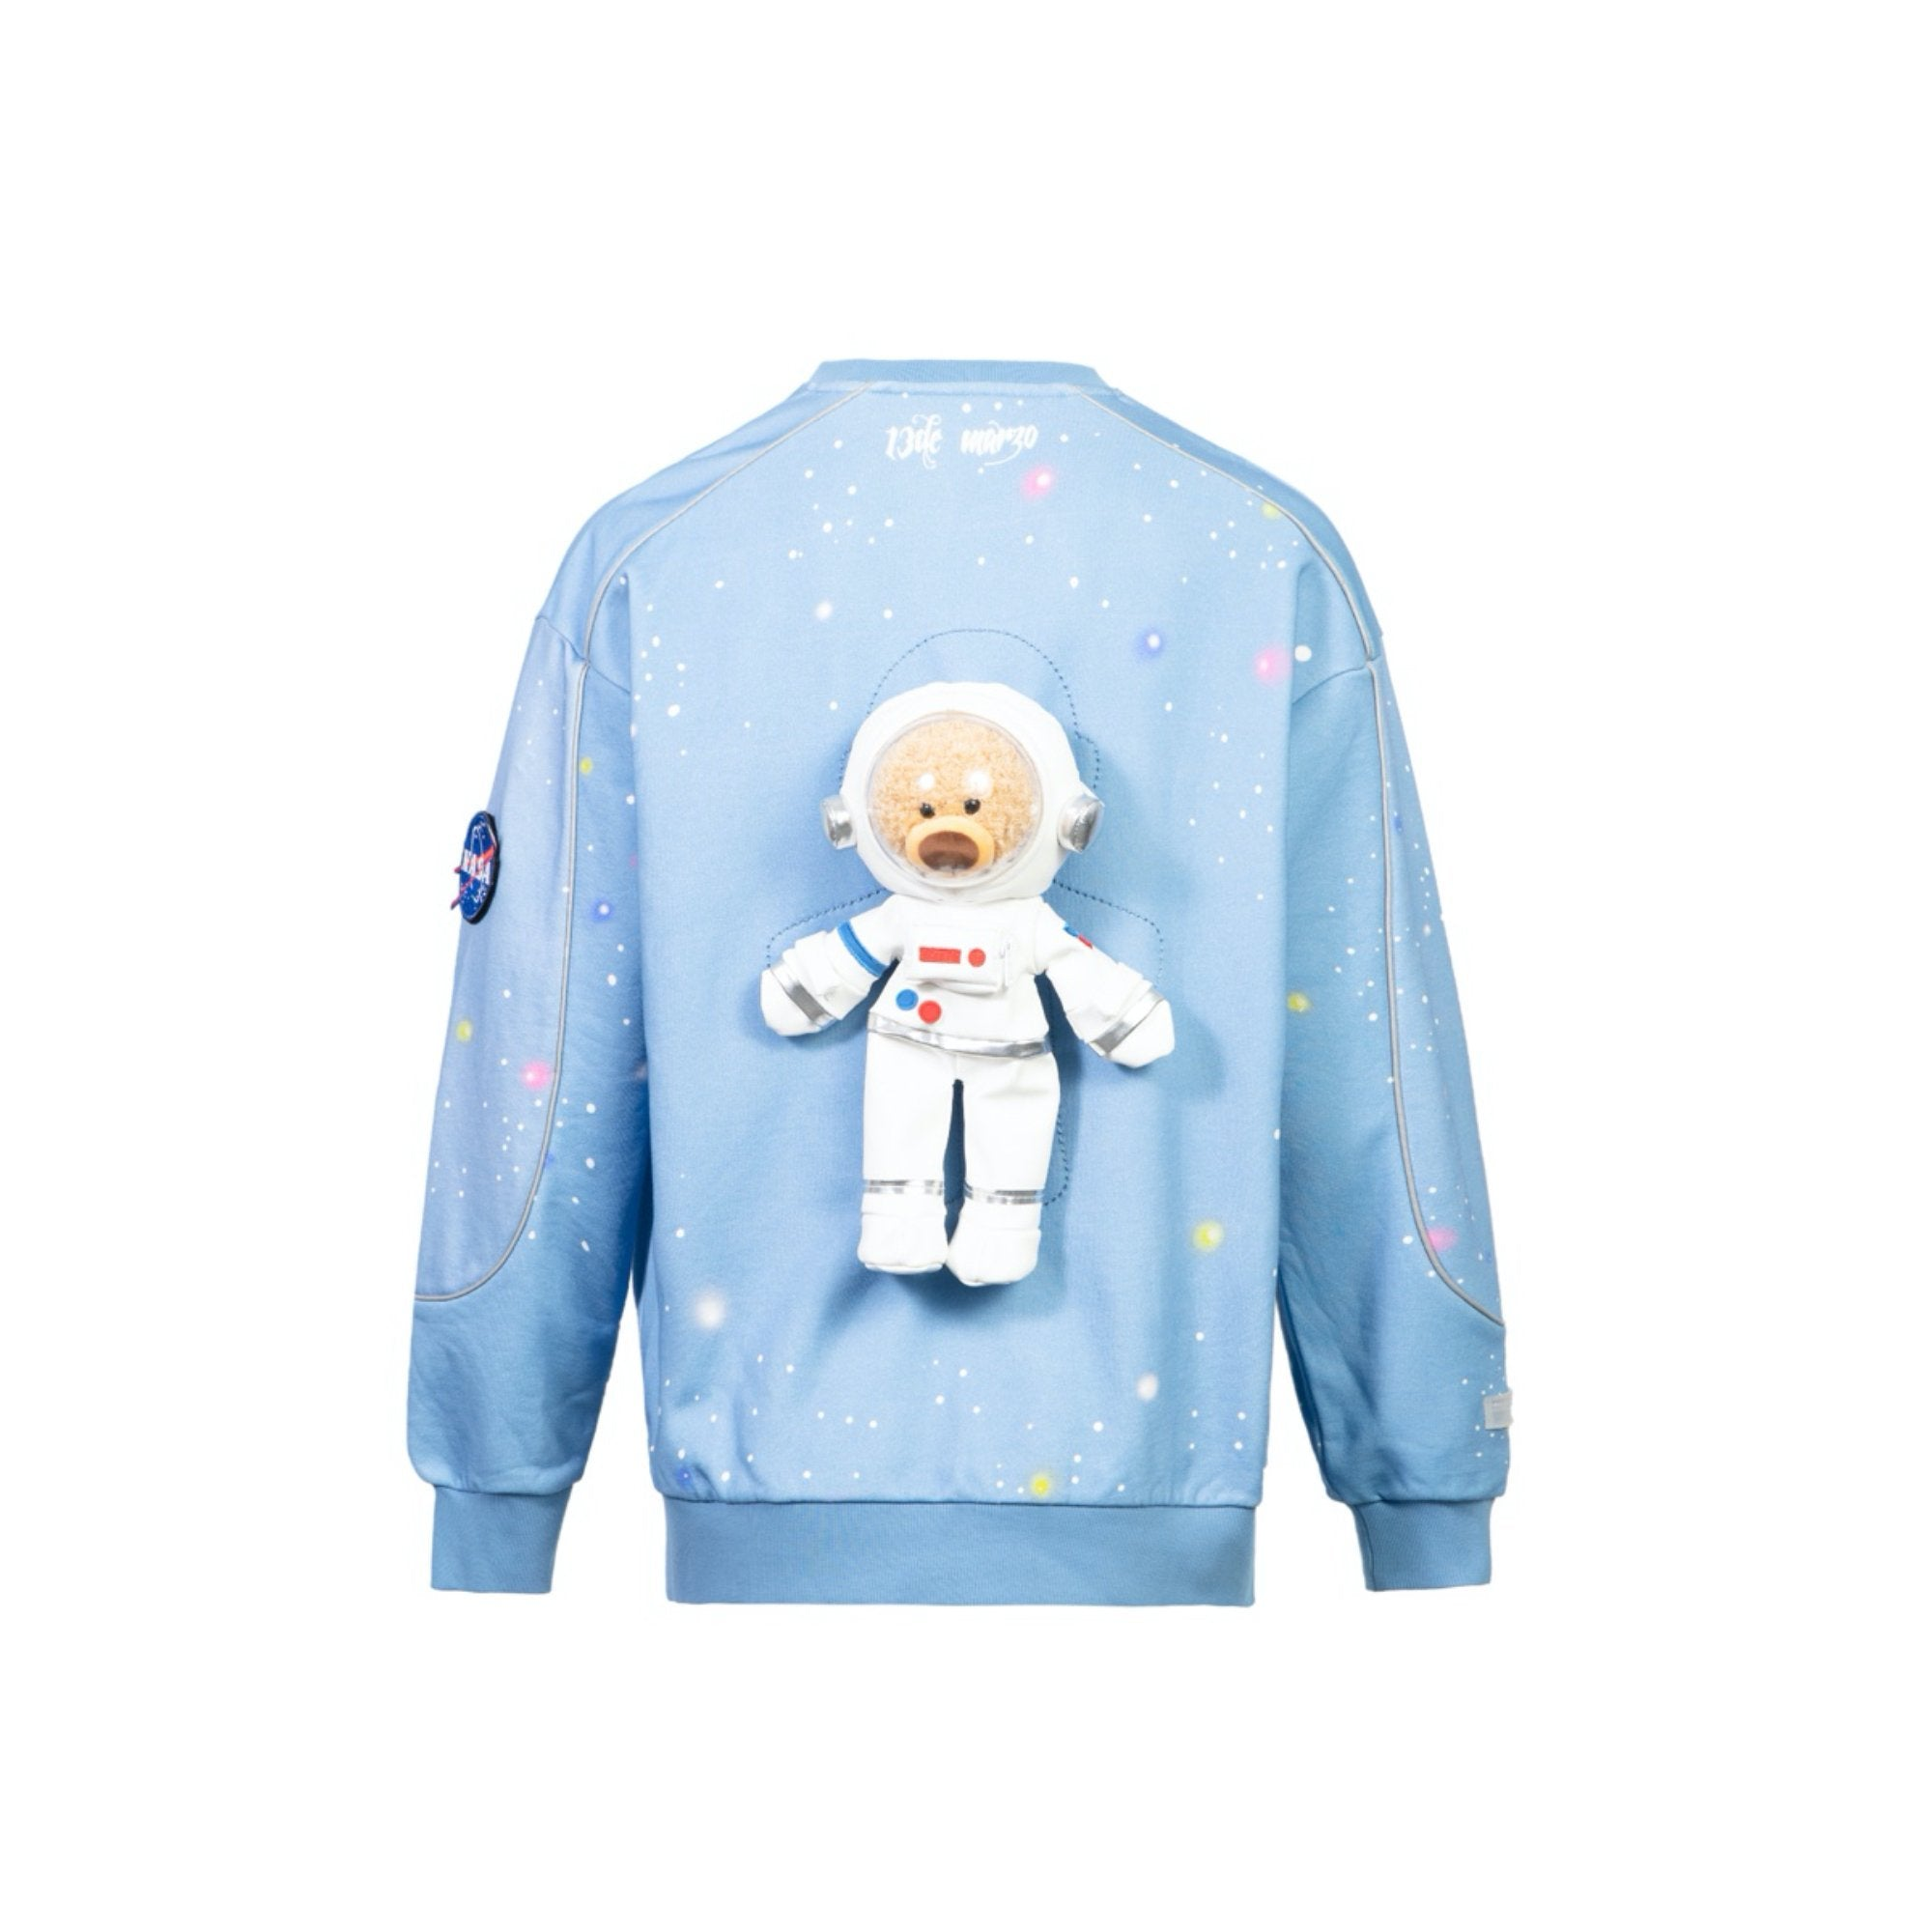 13 DE MARZO Astronaut Teddy Bear Galactic Starry Sweater Clear Sky | MADA IN CHINA